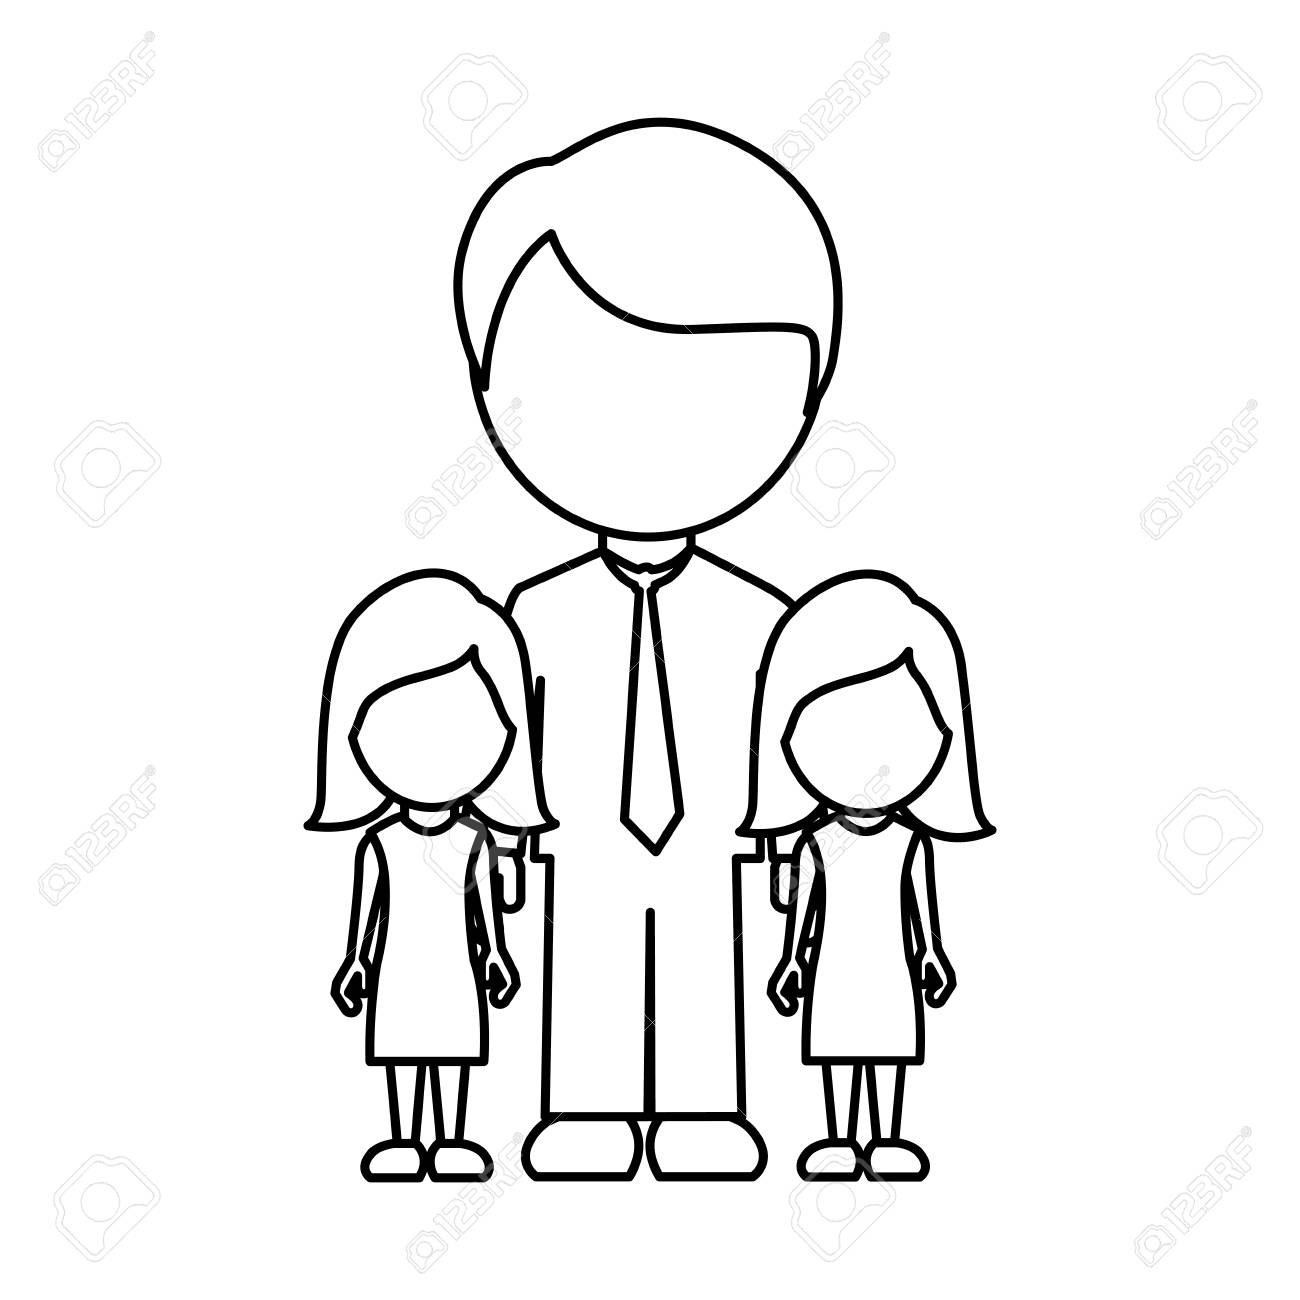 silhouette man her girls twins icon vector illustraction design The Funny Twins silhouette man her girls twins icon vector illustraction design stock vector 72695965